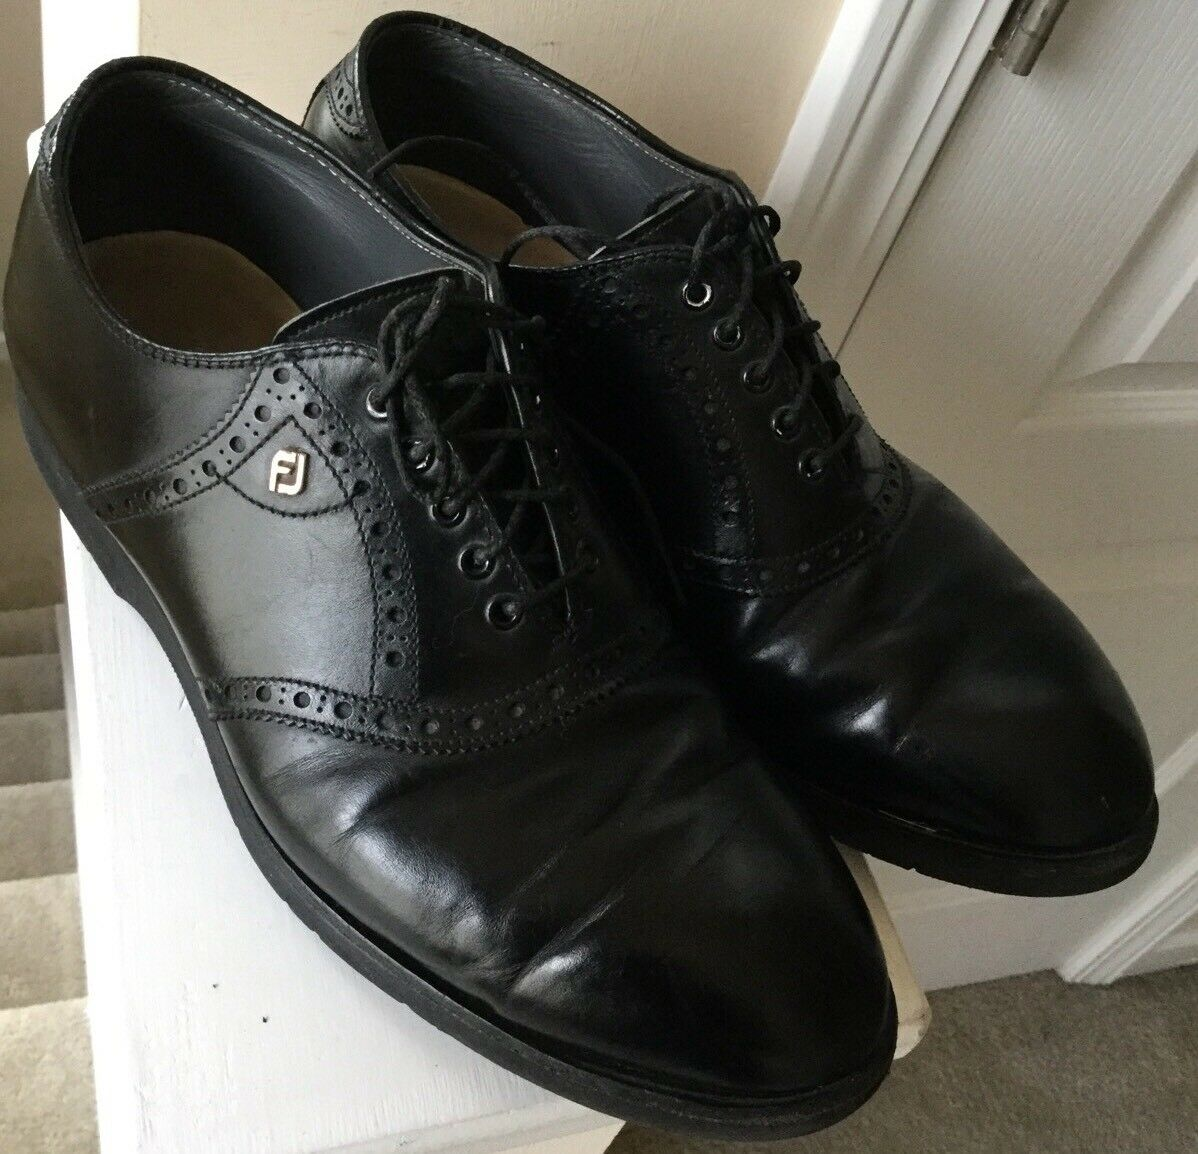 Footjoy Golf Oxford Loafers Black Mens Size 8 D Black Loafers Leather Shoes Oxfords Casual 29989c